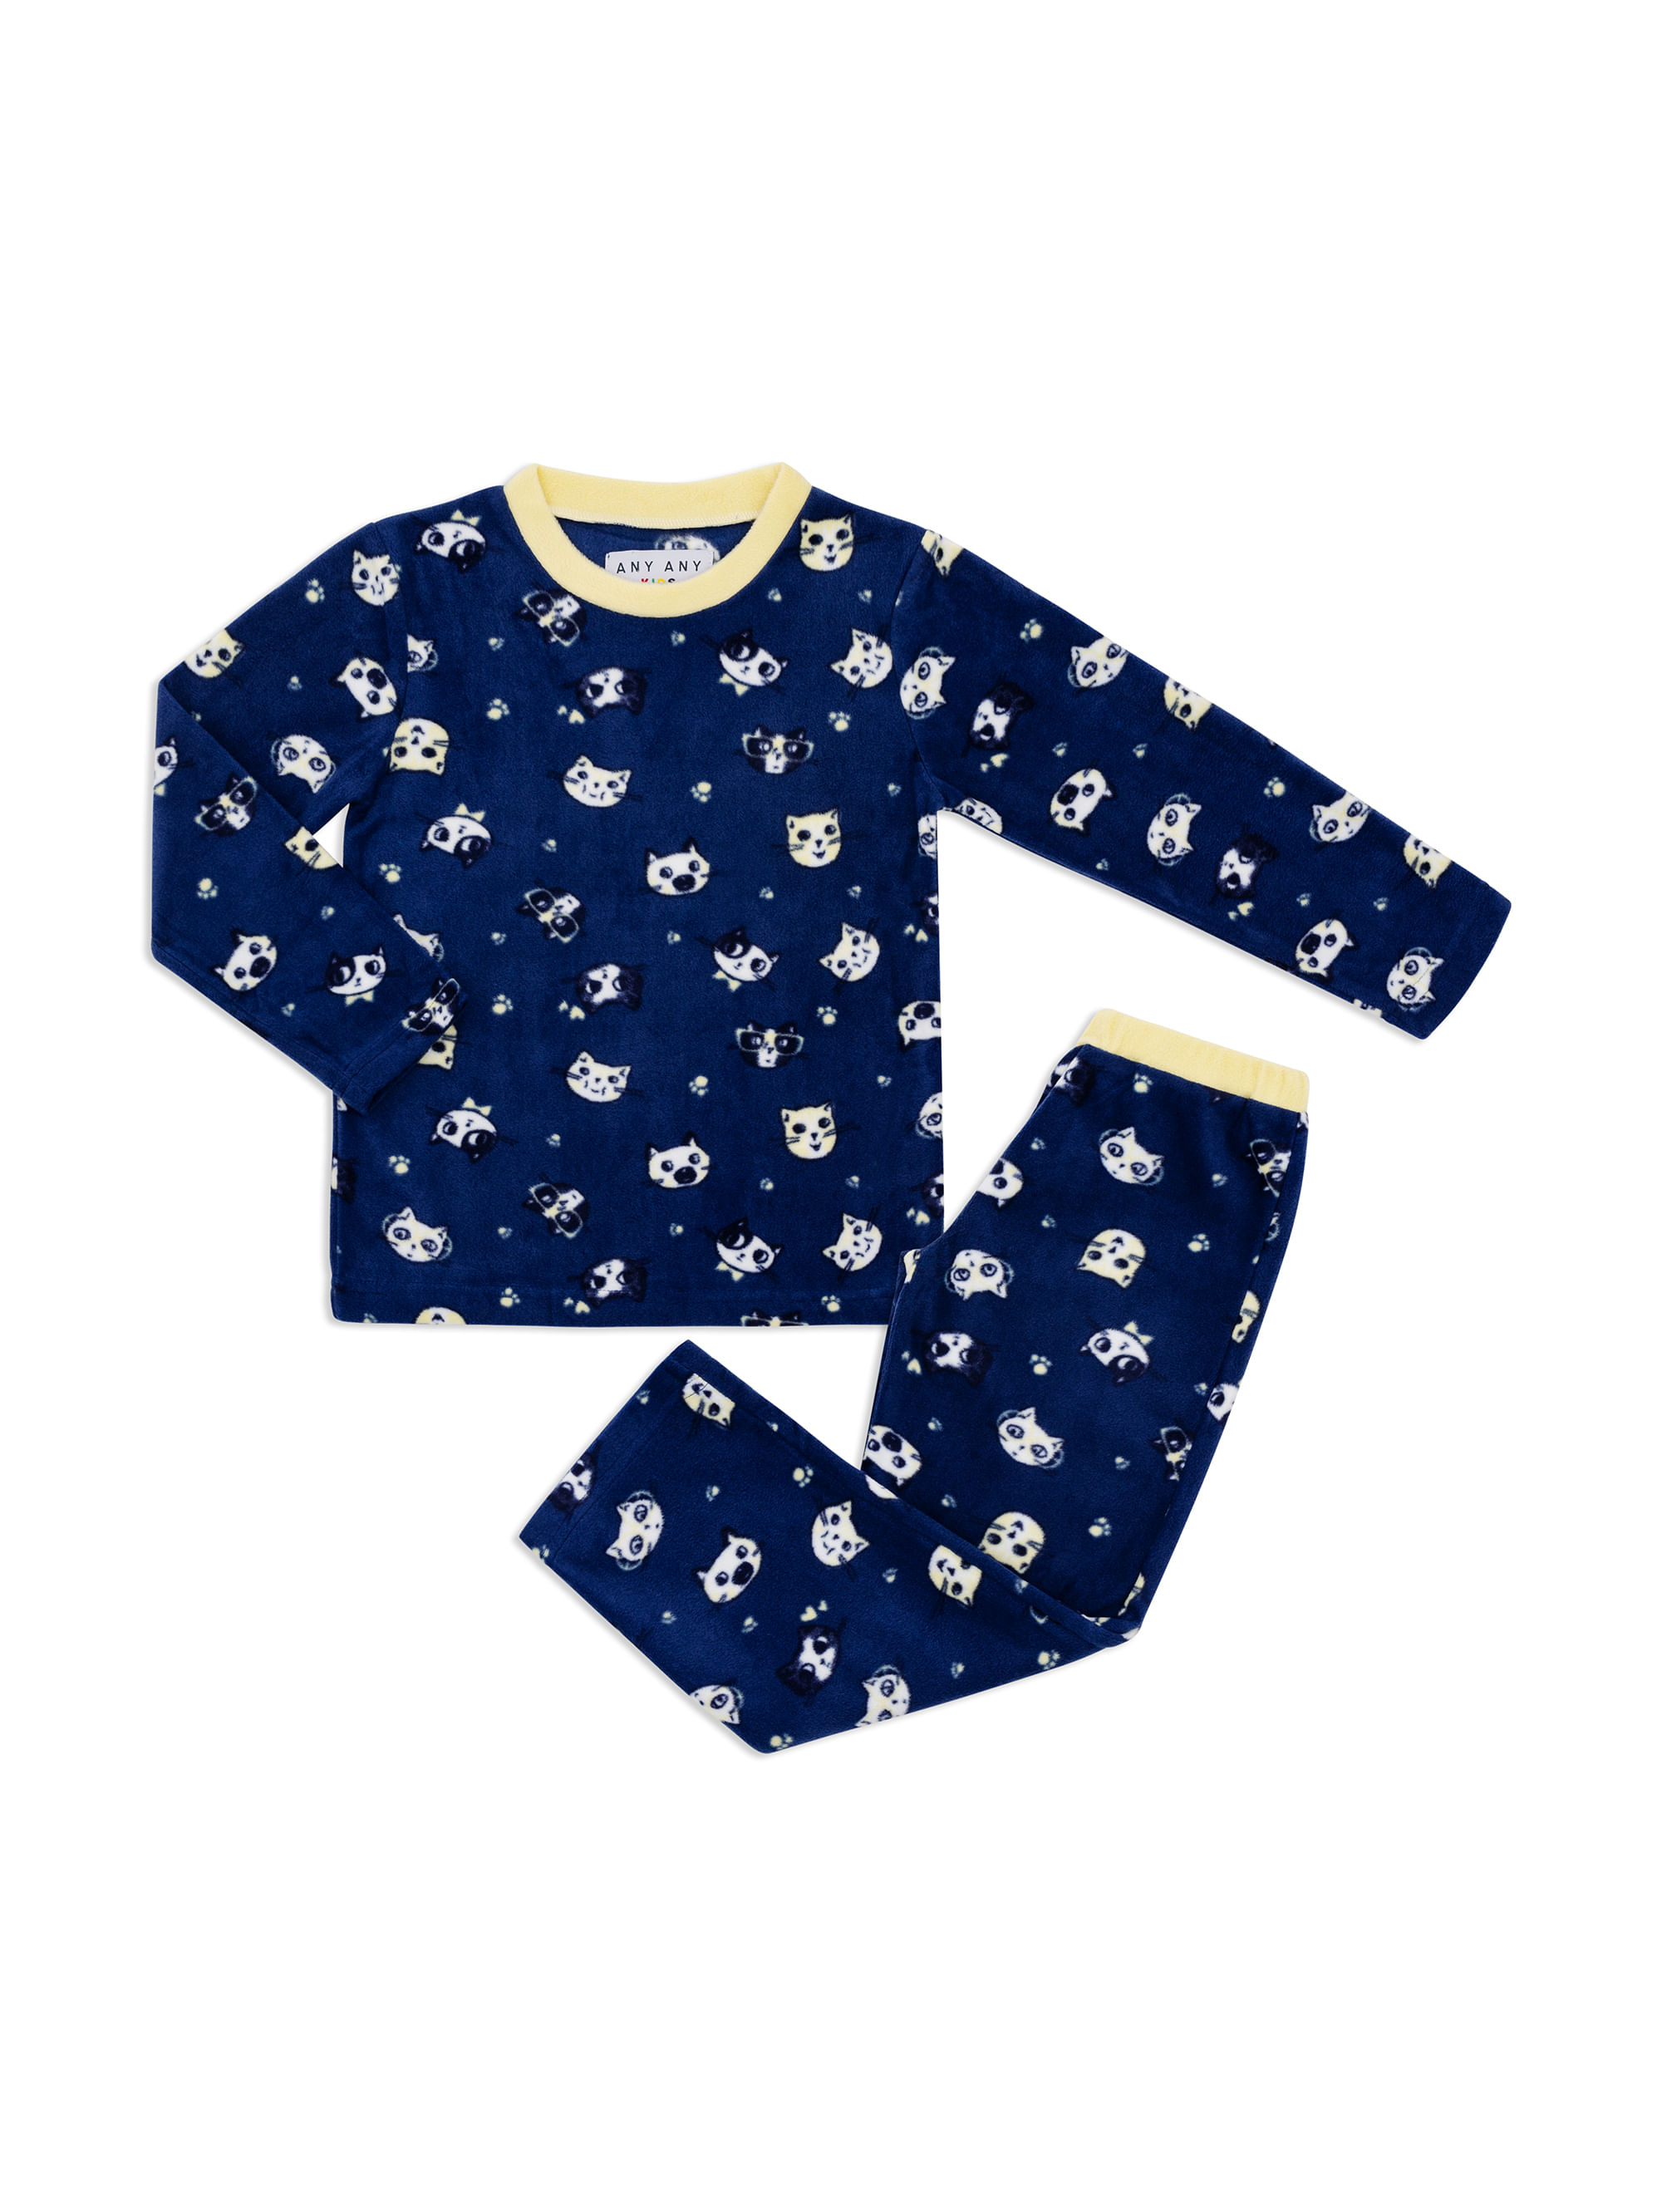 PL-ML-I-NAVY-CATS-040112610302